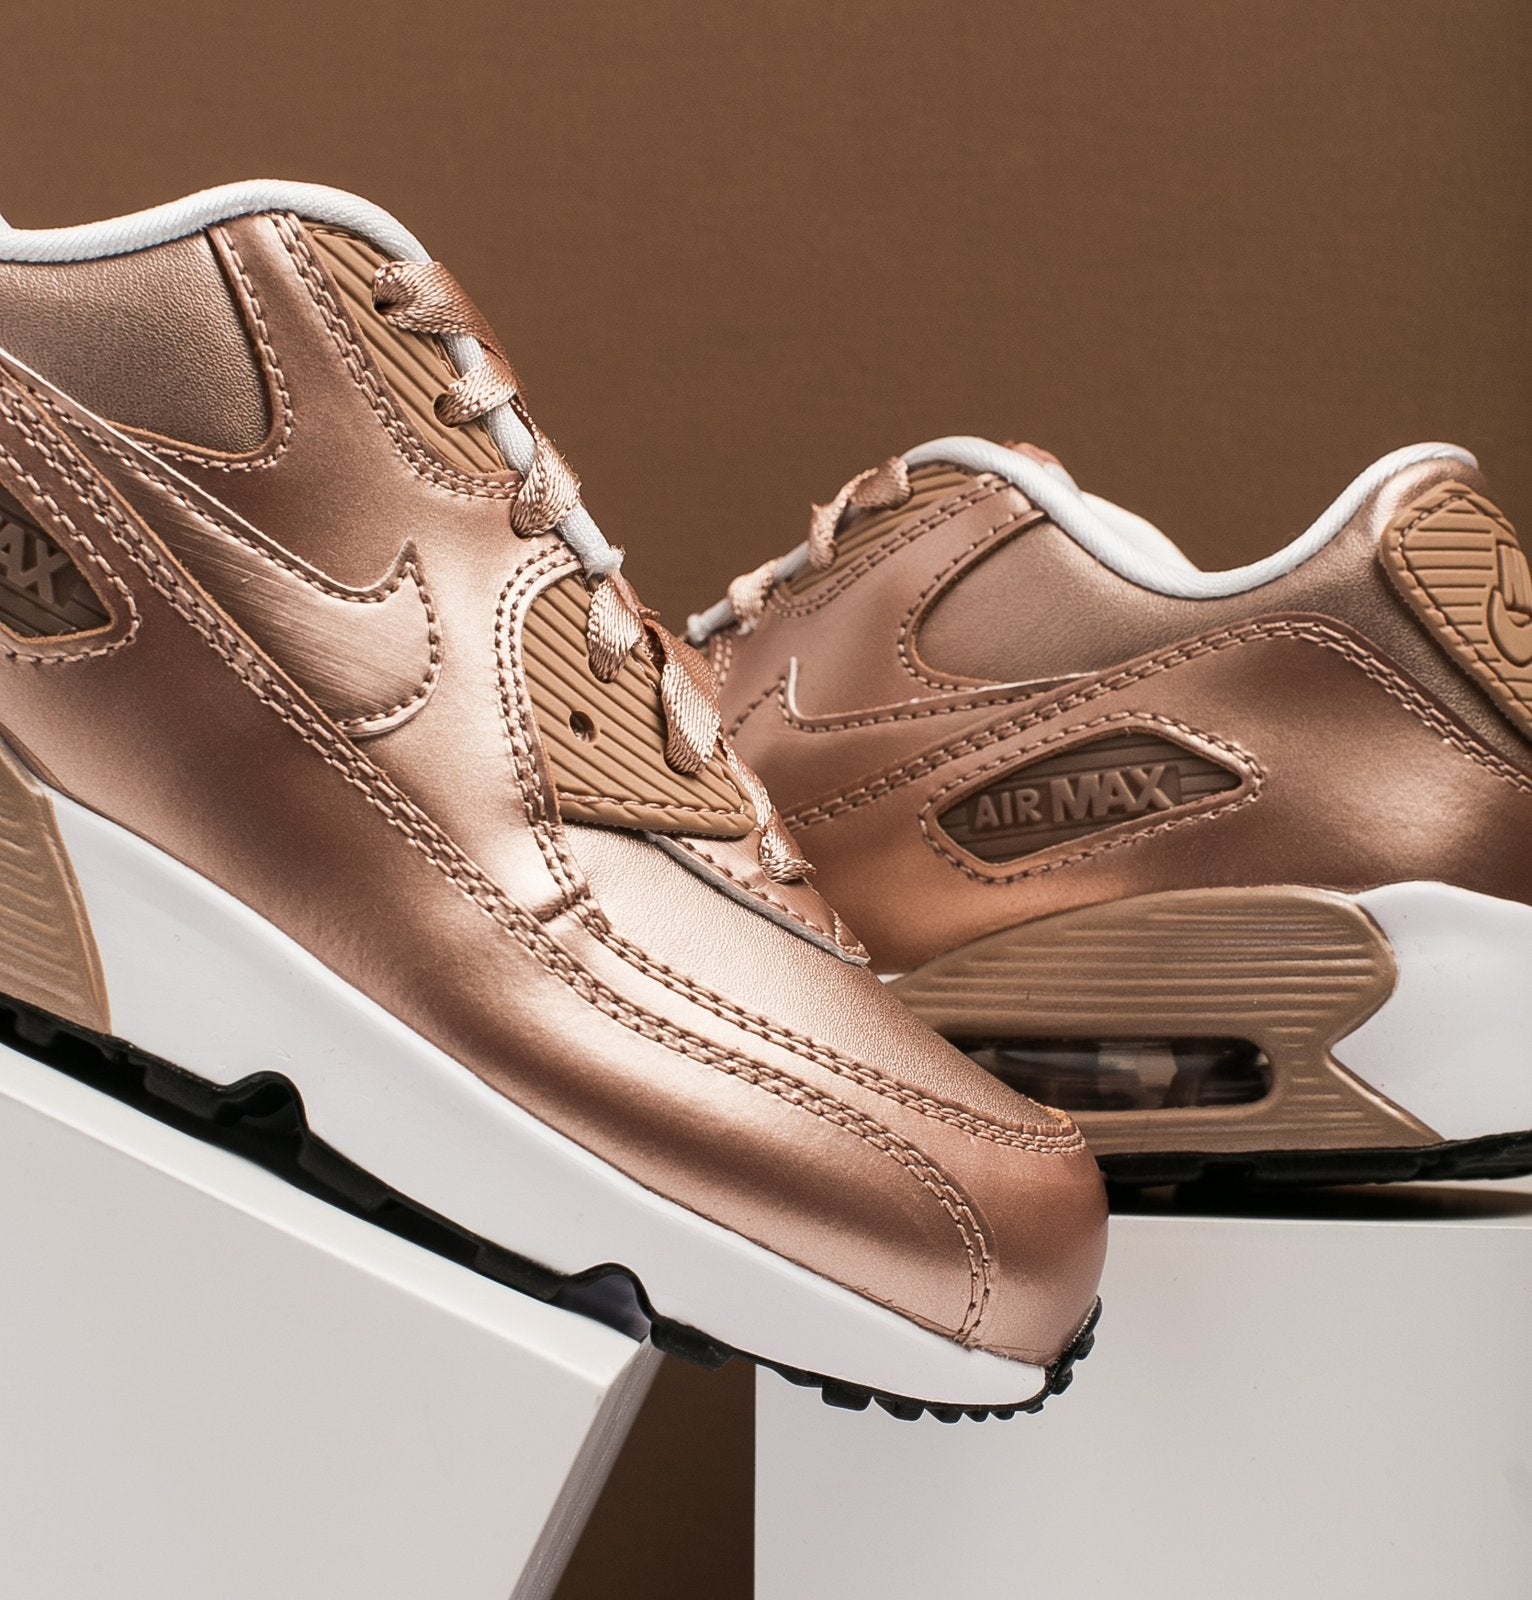 uk nike air max 90 rose gold womens tennis e3618 b8430 75ba64ded